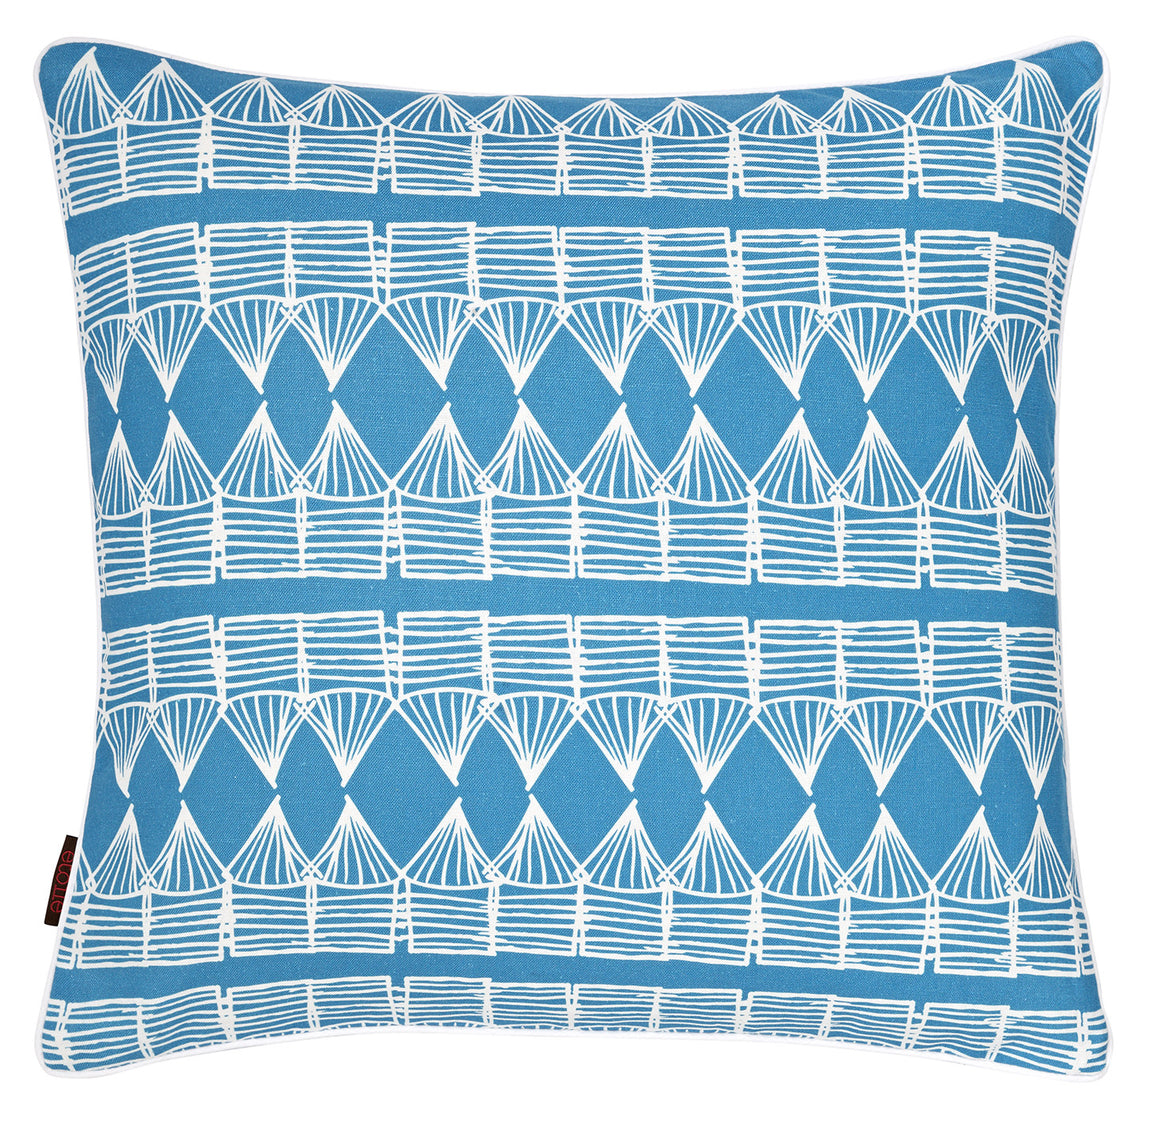 Tiki Huts Pattern Linen Cushion in Bright Turquoise Blue